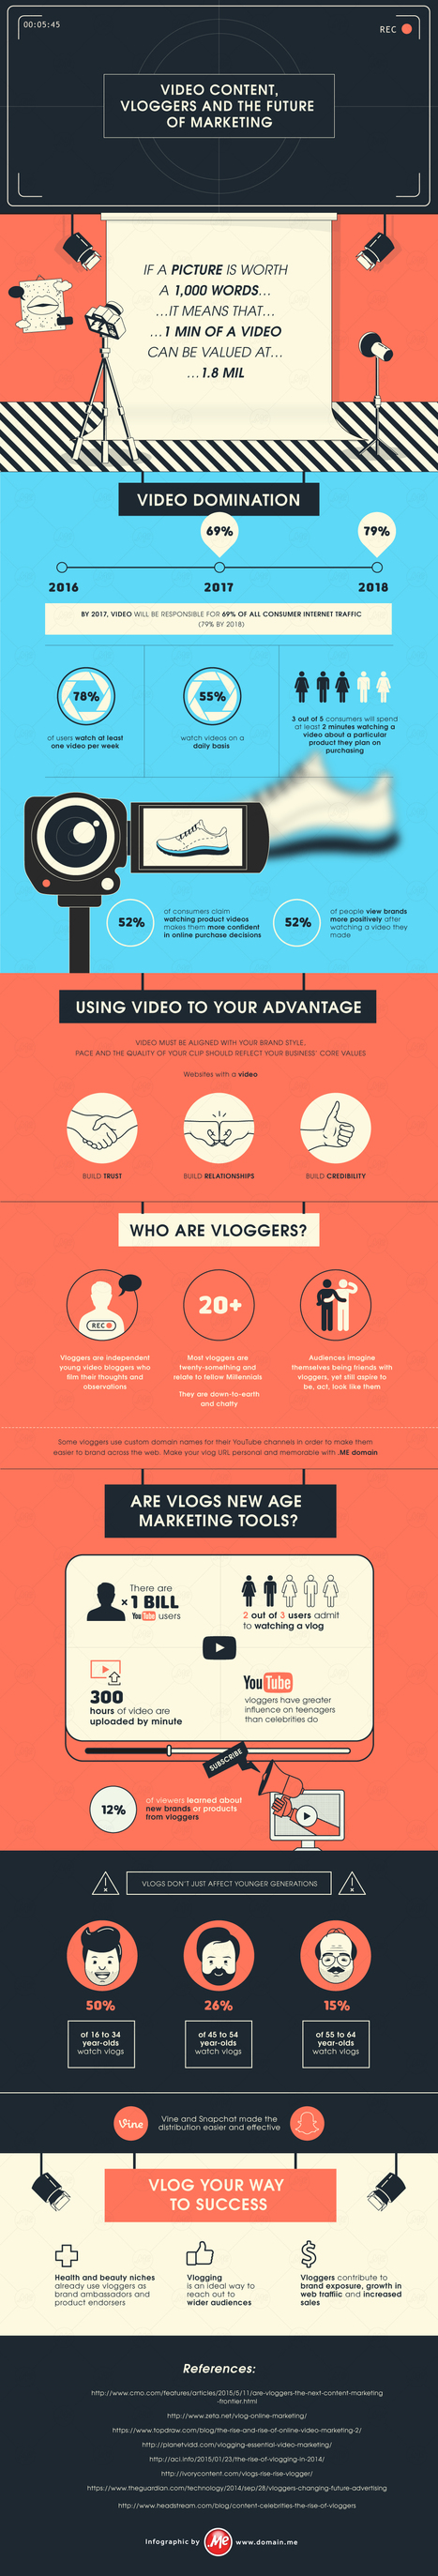 #Infographic Video Content, Vloggers and the Future of Marketing | Social media trends | Scoop.it